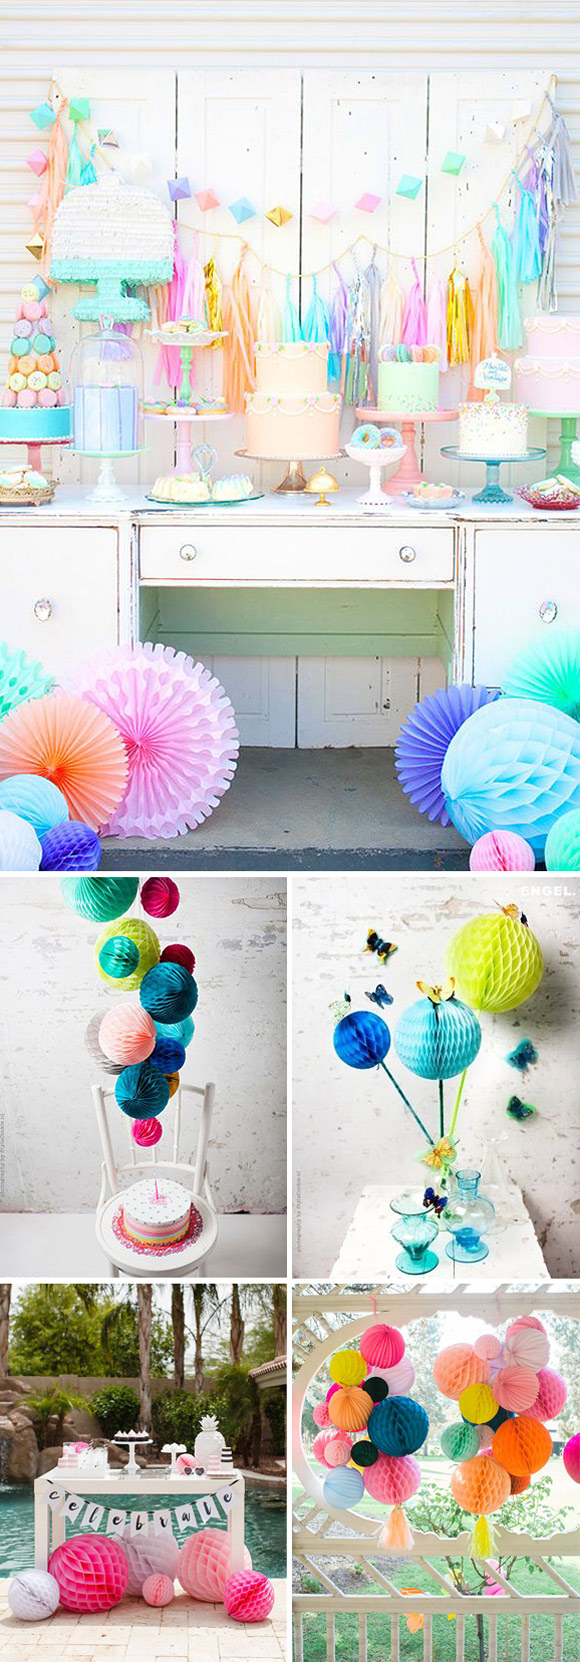 Ideas para decorar tu fiesta con honeycombs